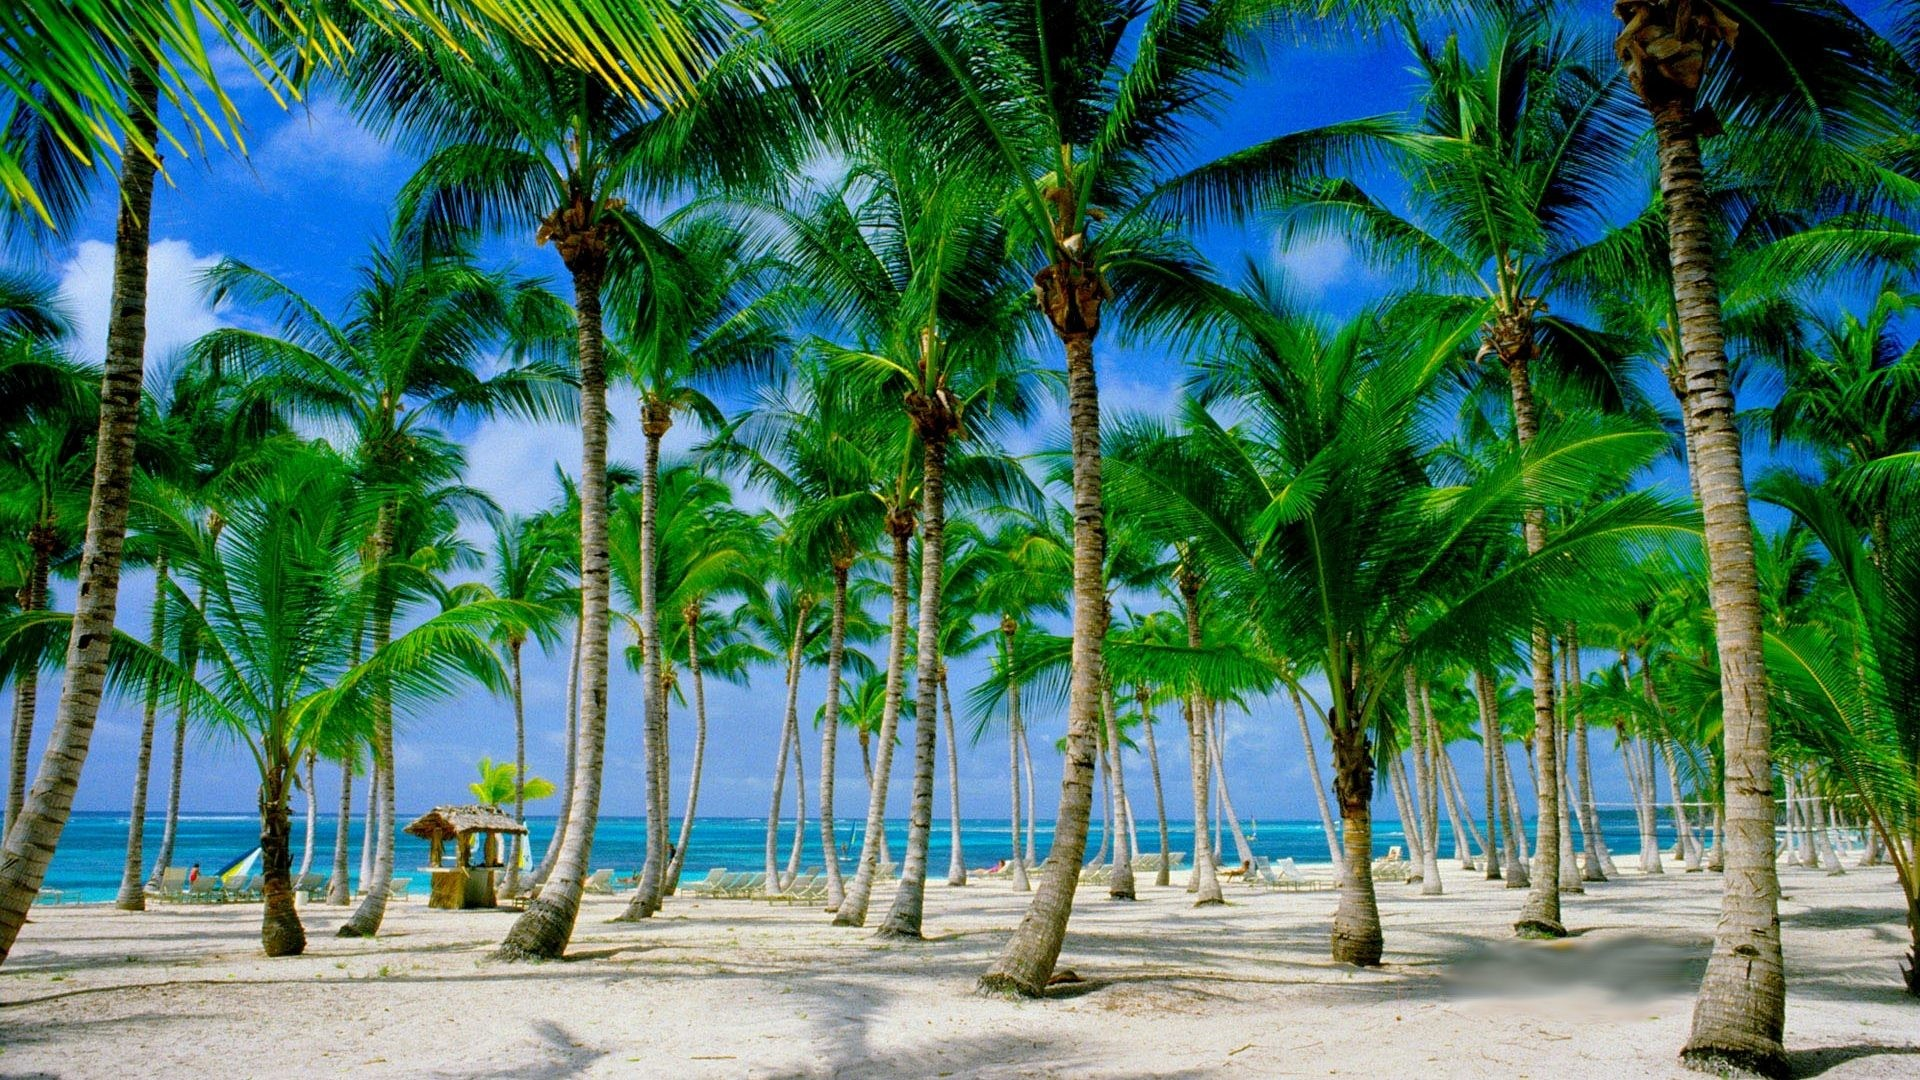 1920x1080 Beach Tropical Paradise Palms Summer Wallpaper With Scenes